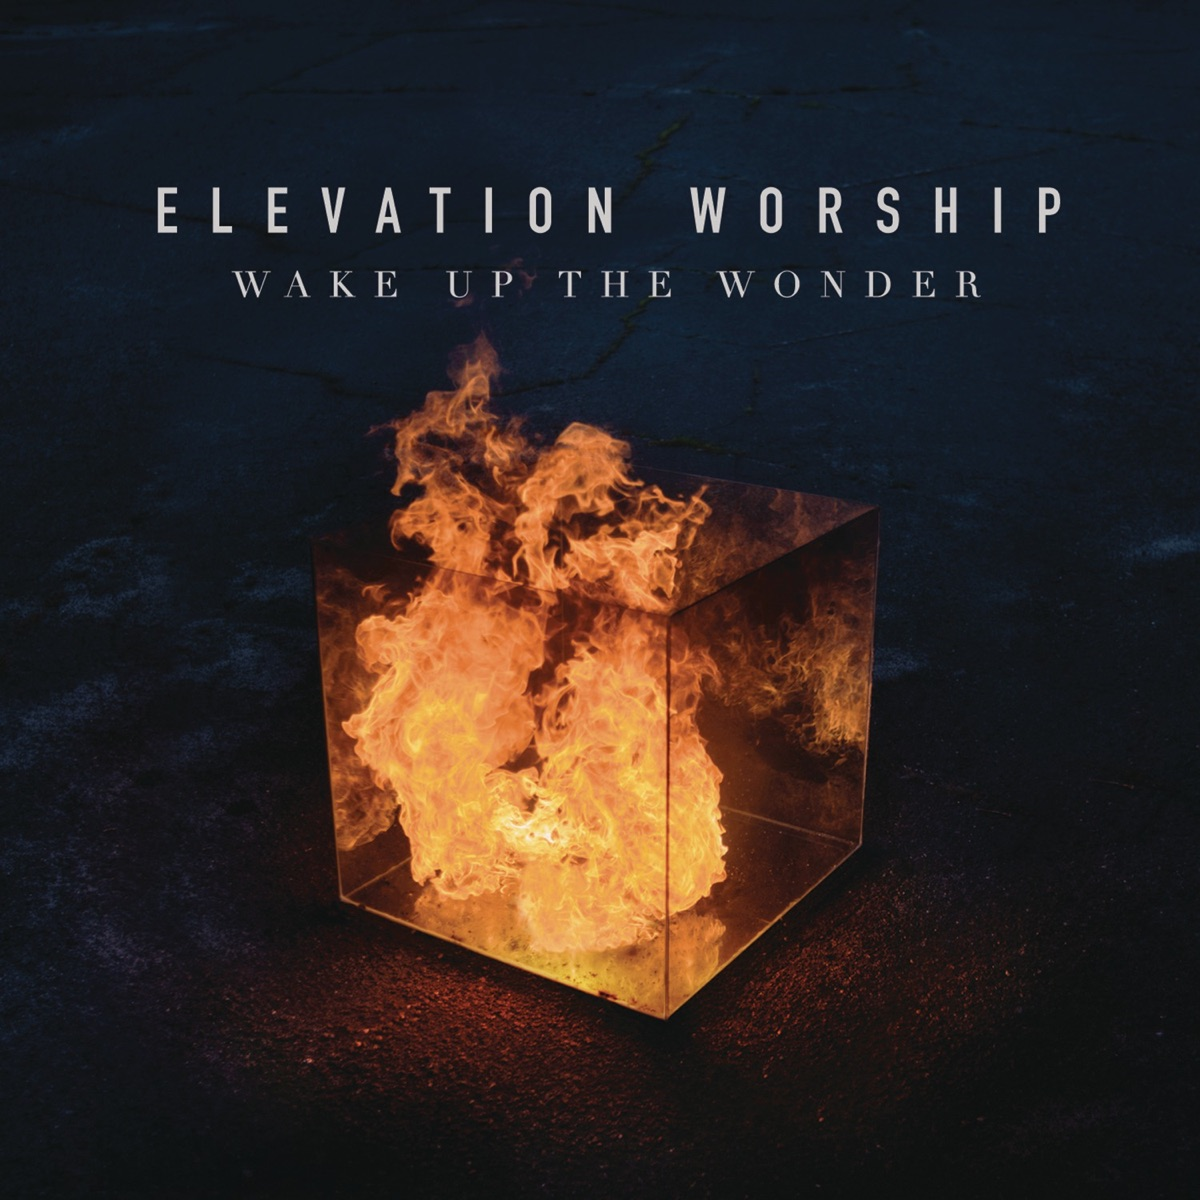 Wake Up the Wonder Live Elevation Worship CD cover